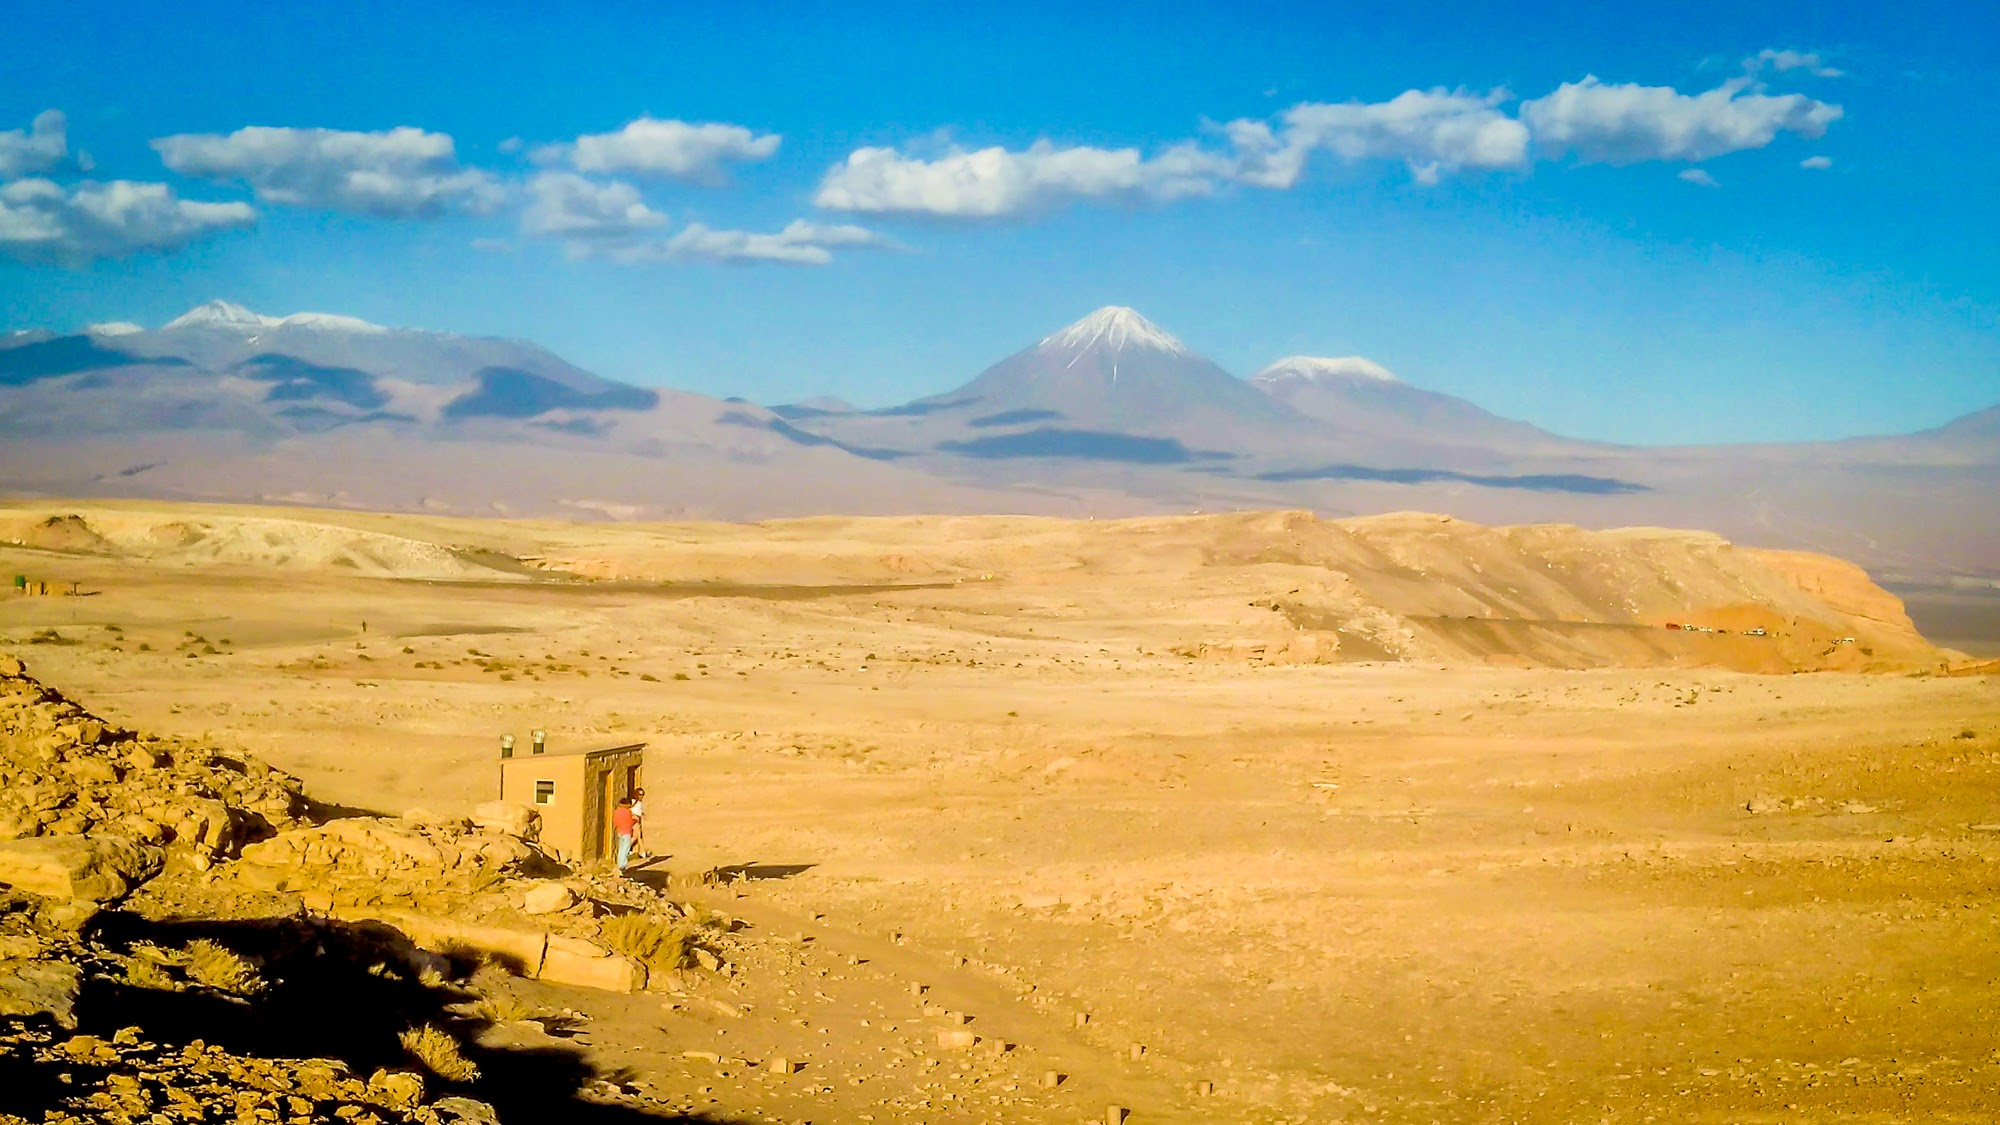 volcanoes as seen from the atacama desert in Chile south america